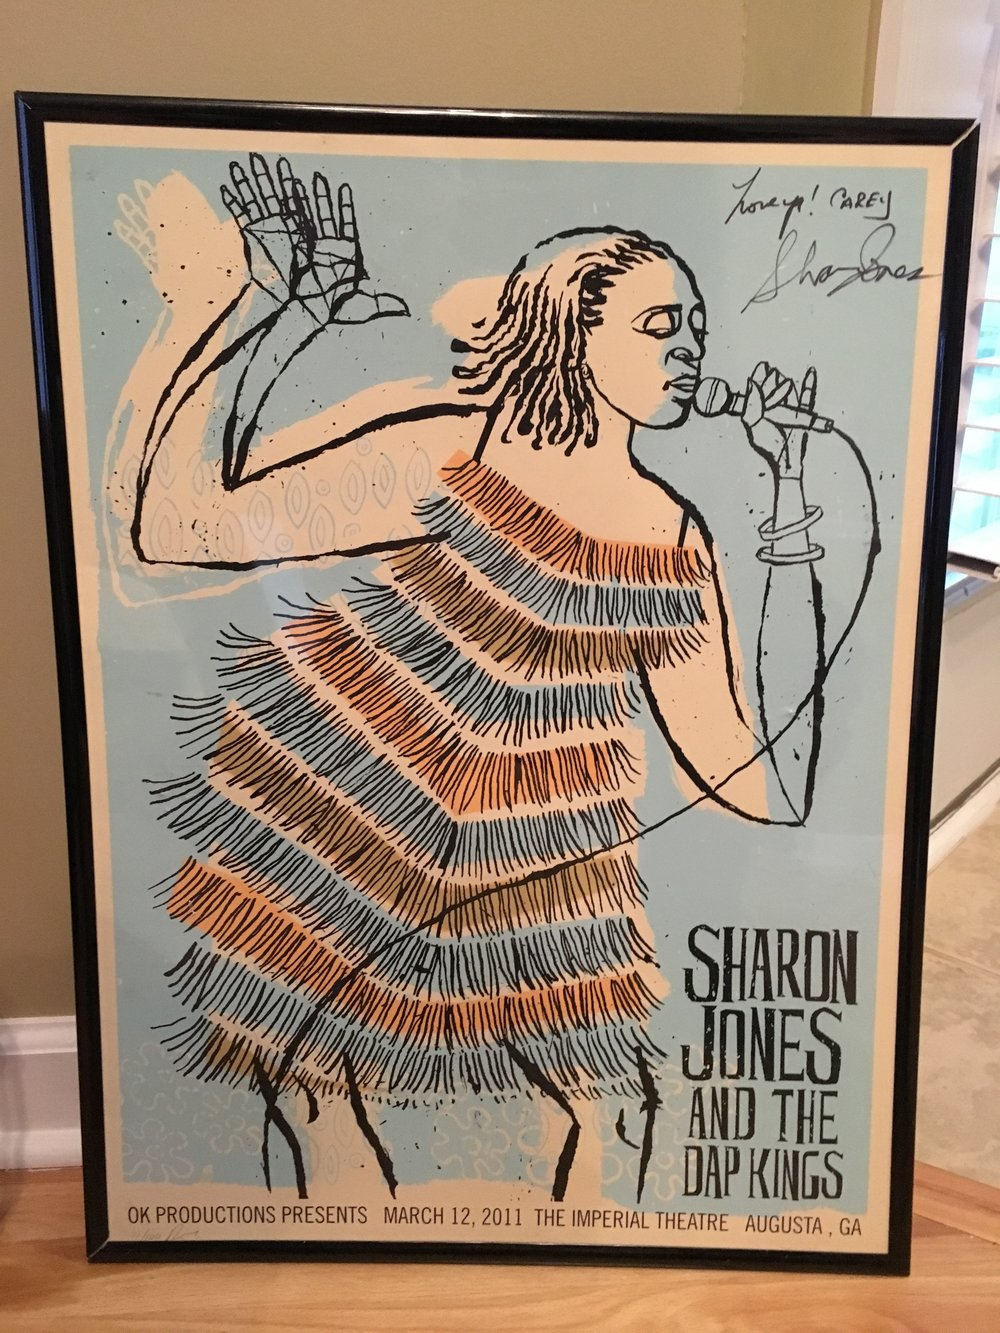 The show poster Sharon Jones signed and gave to me the night I met her in 2011.